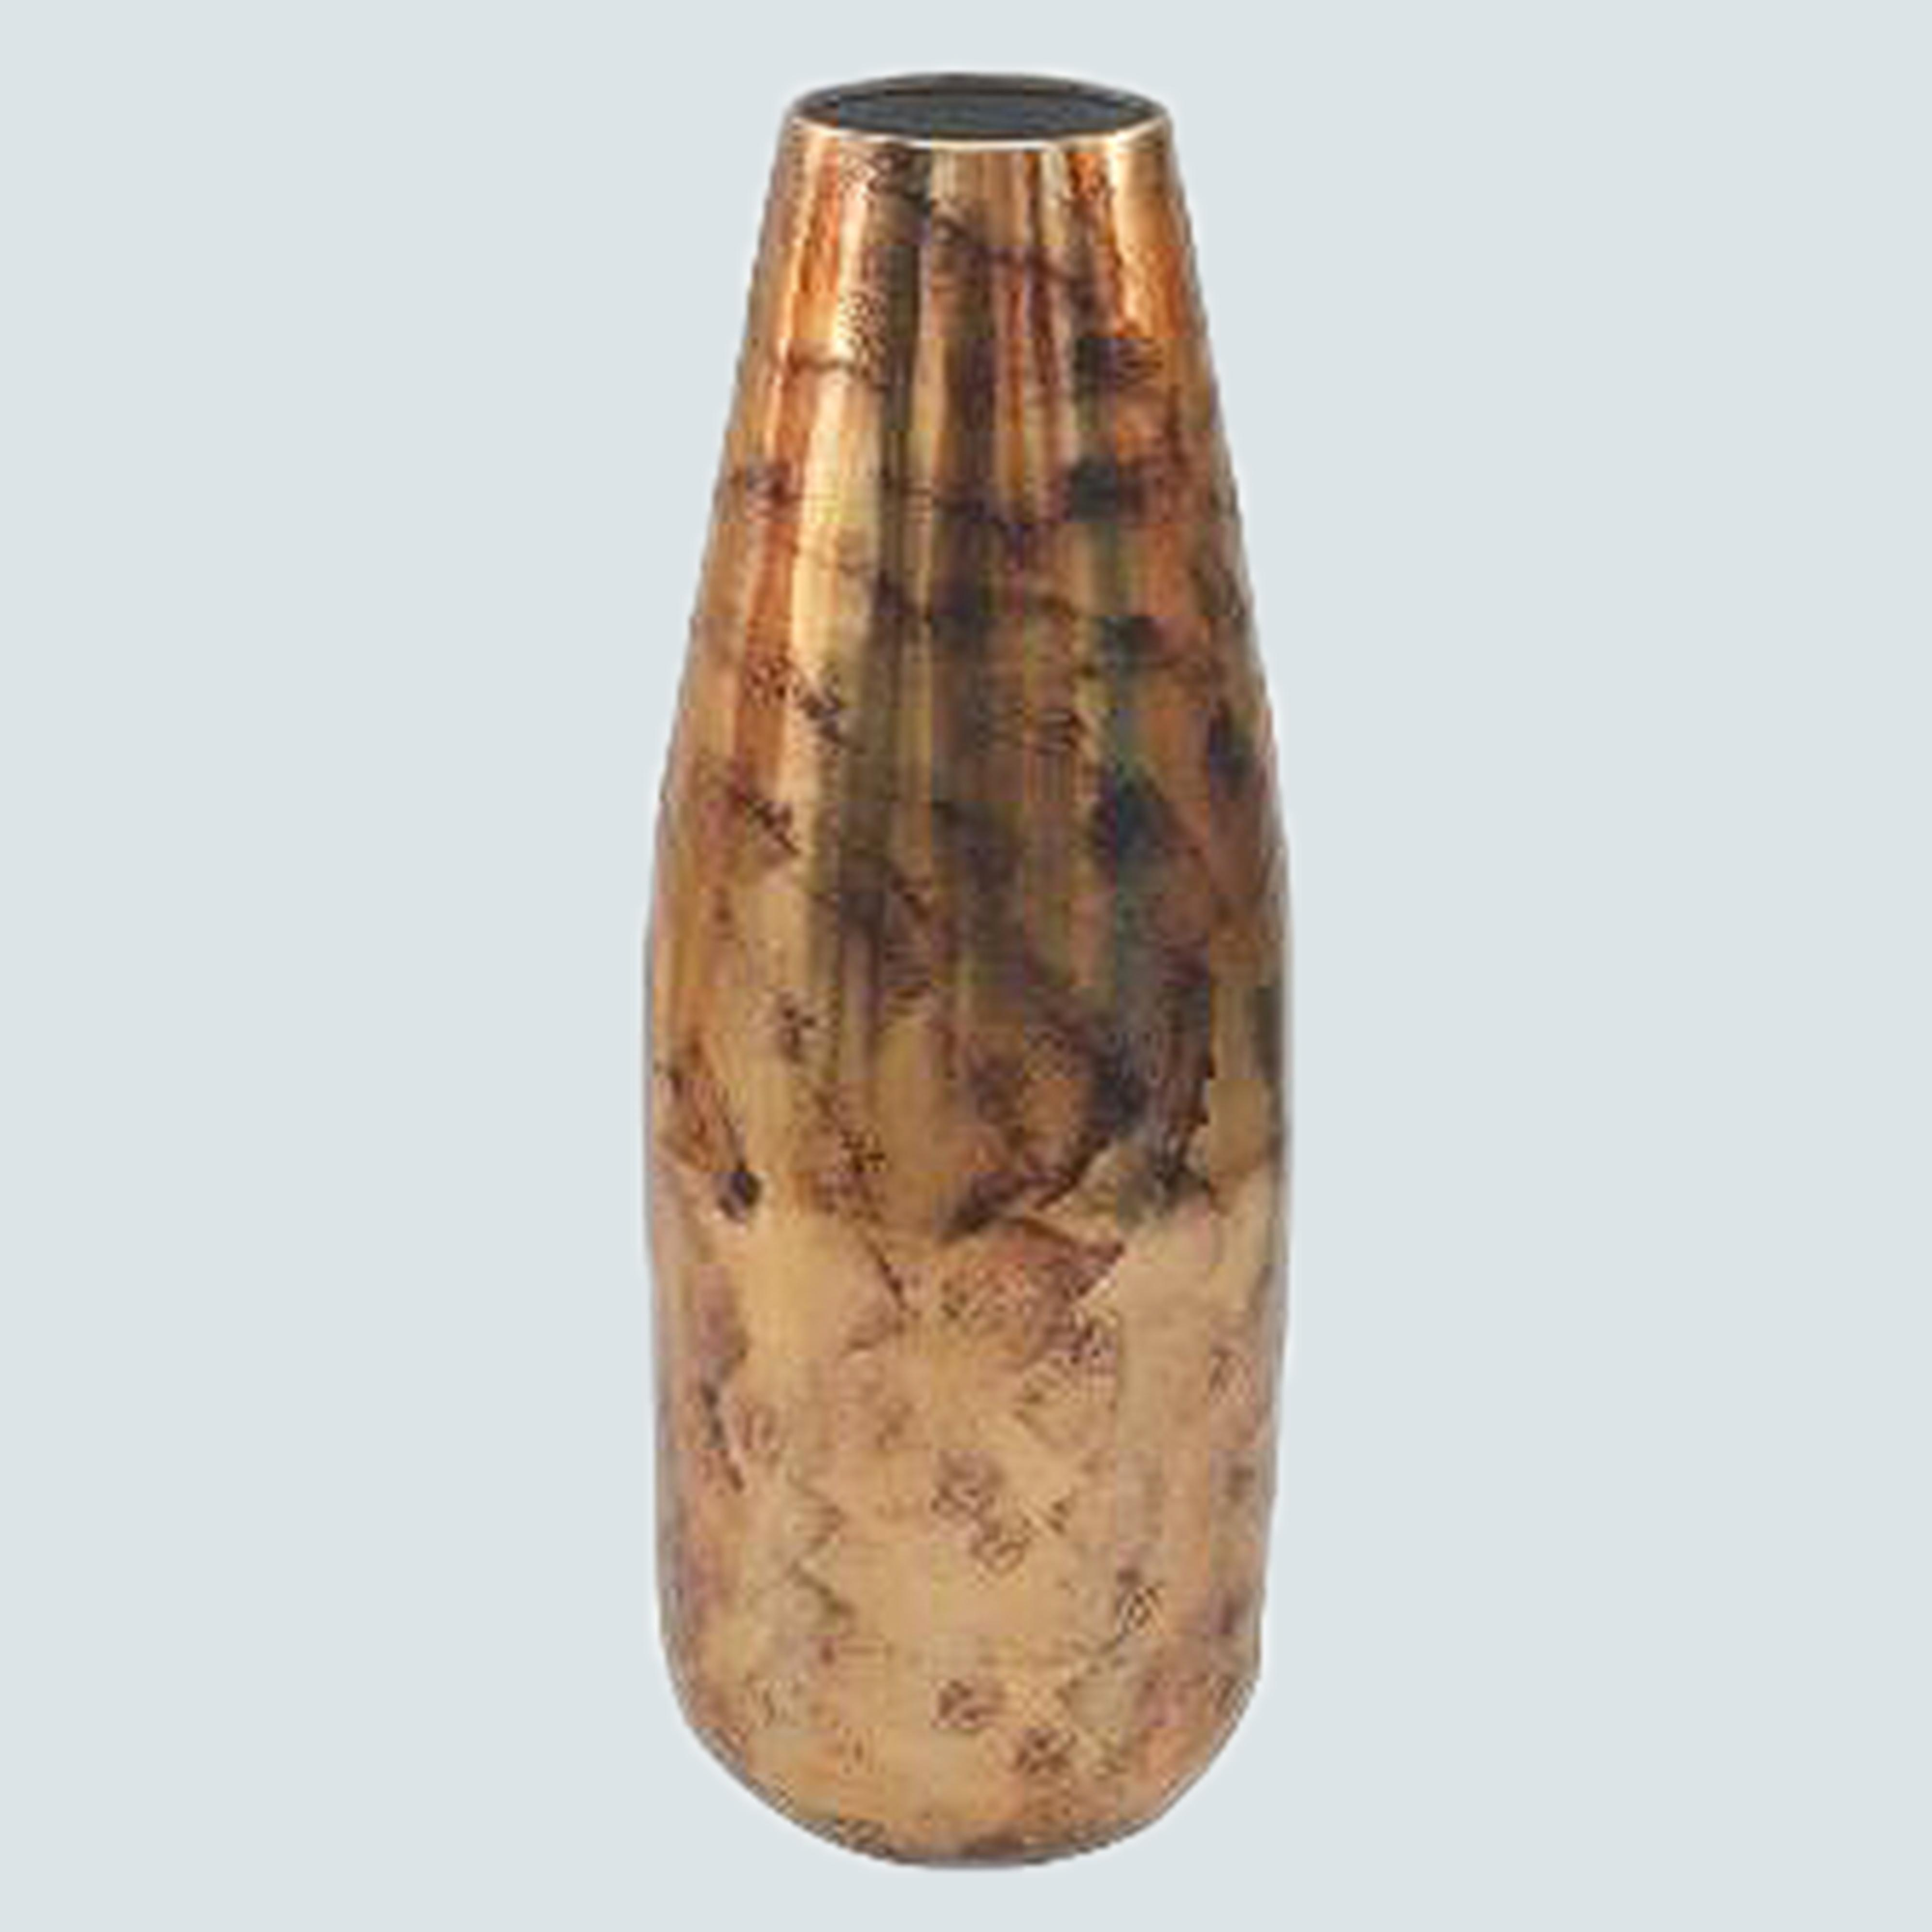 Handmade Vase from recycled Aluminium - Metal and Clay Cylinder Vase | Distressed Whitewashed Iron Finish | Holds Floral or Flower Arrangements, Home Decor Elements | for Decoration, Den, Farmhouse, Kitchen, Bathroom | 20 Inches Tall